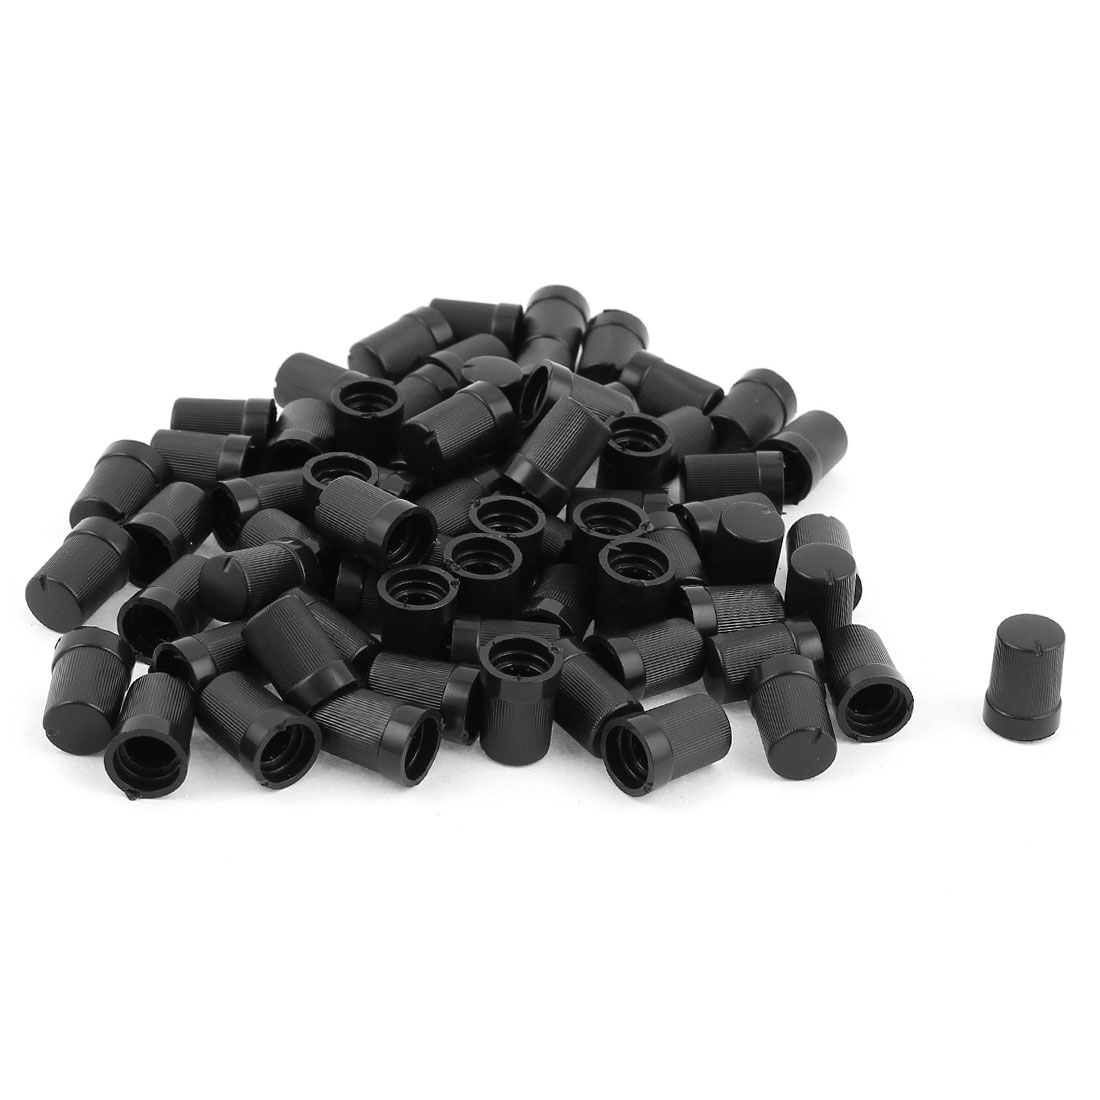 70pcs 6mm Knurled Thread Dia Black Roatory Potentiometer Knob